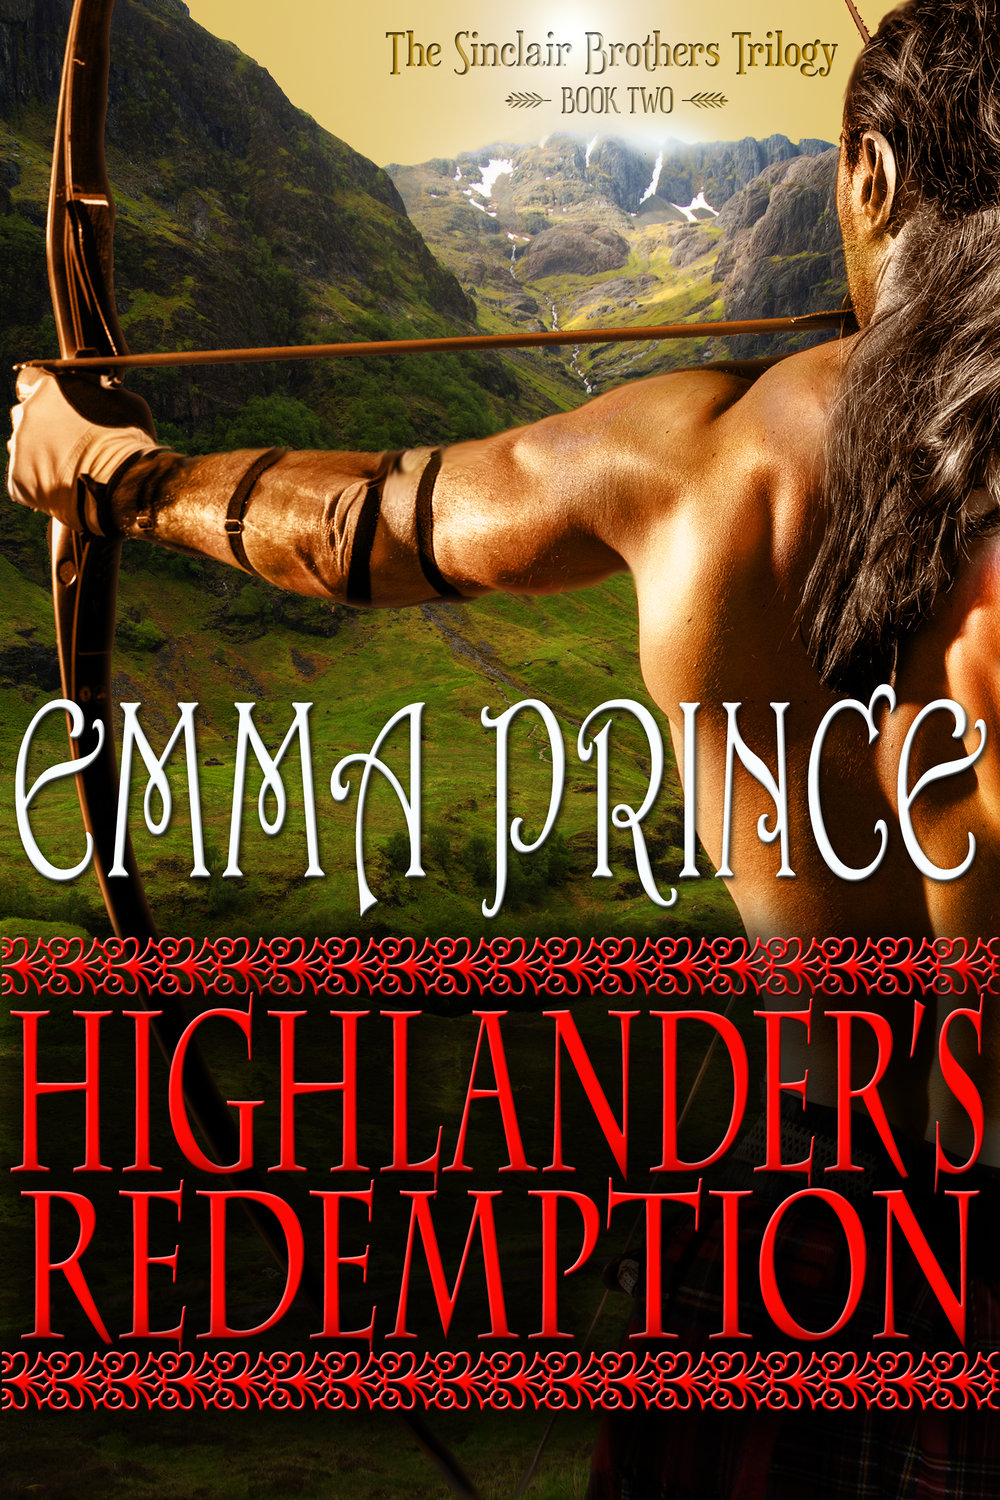 Highlander's Redemption (Book 2)